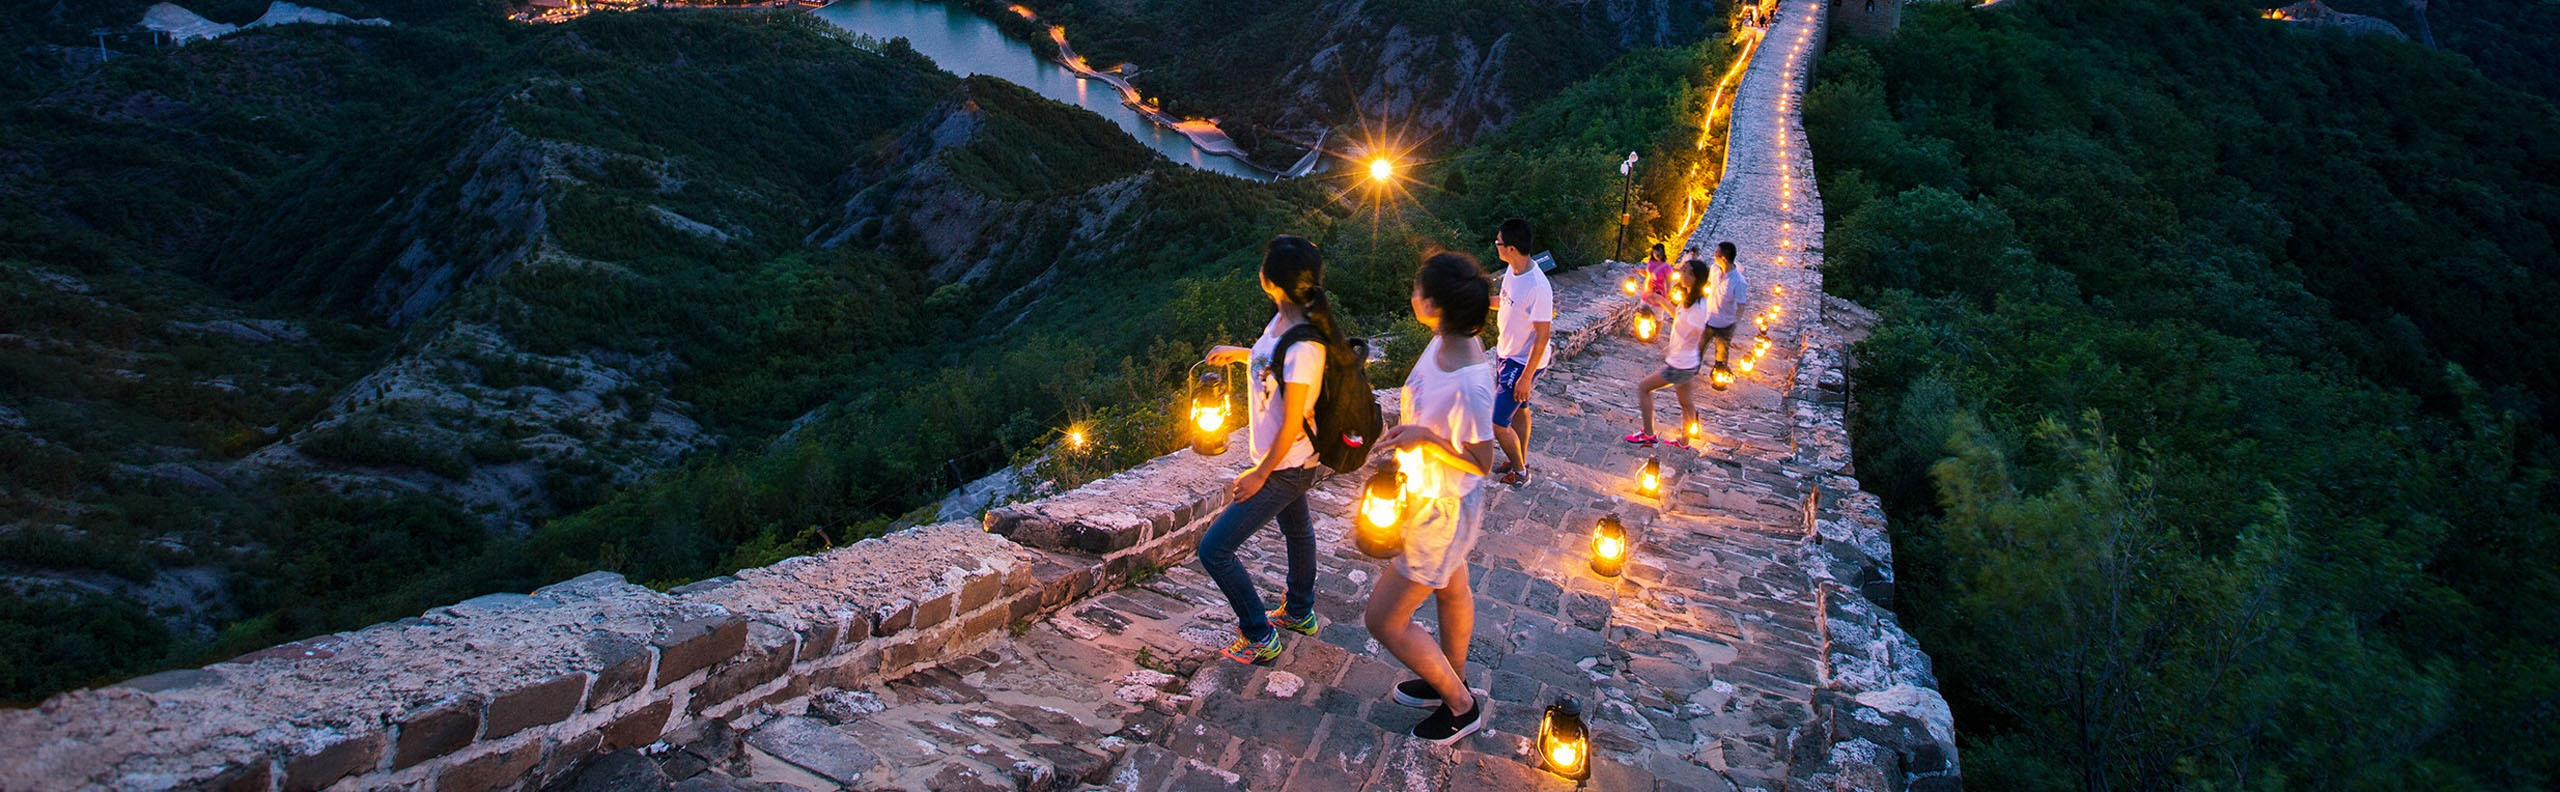 4 Days Beijing Private Tour to Visit the Great Wall at Night